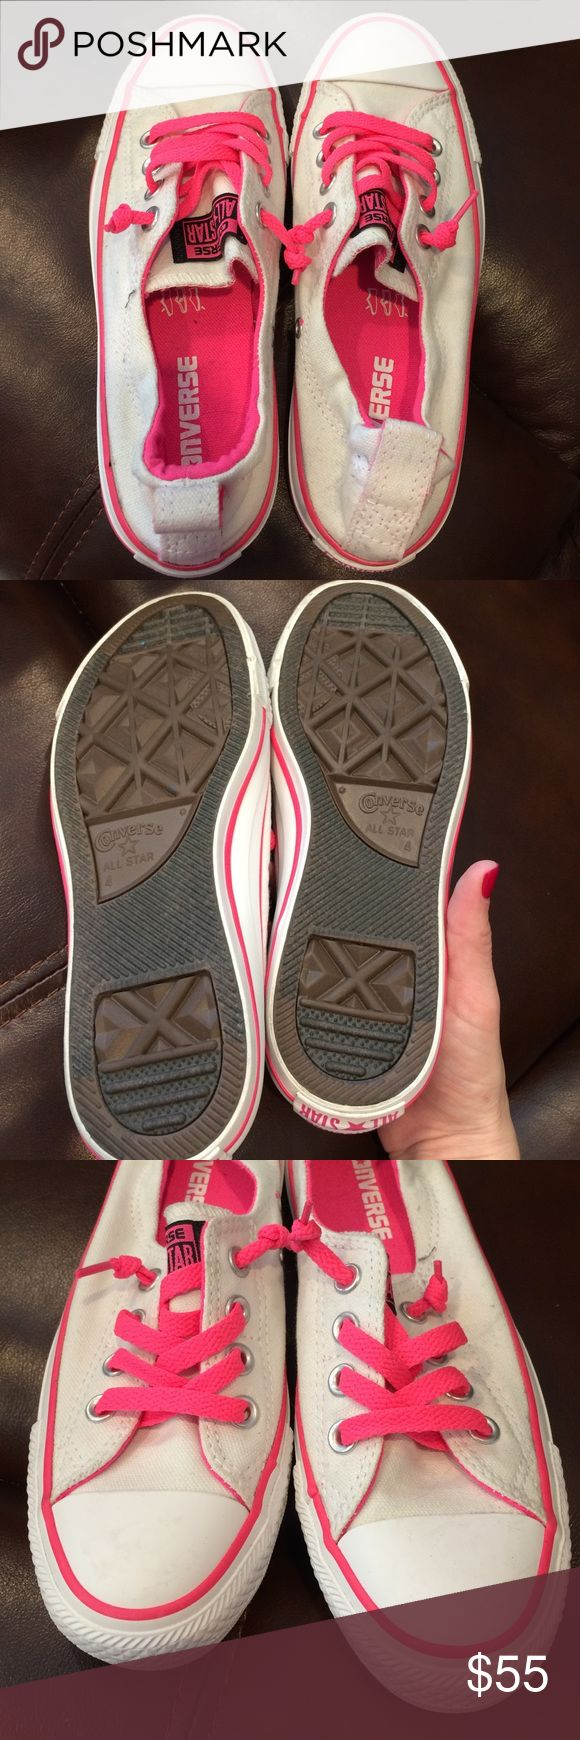 Converse slip ons Pink and white gently used slip ons. Very very gently used. Still in good condition. Says US 6, UK 4. Converse Shoes Sneakers